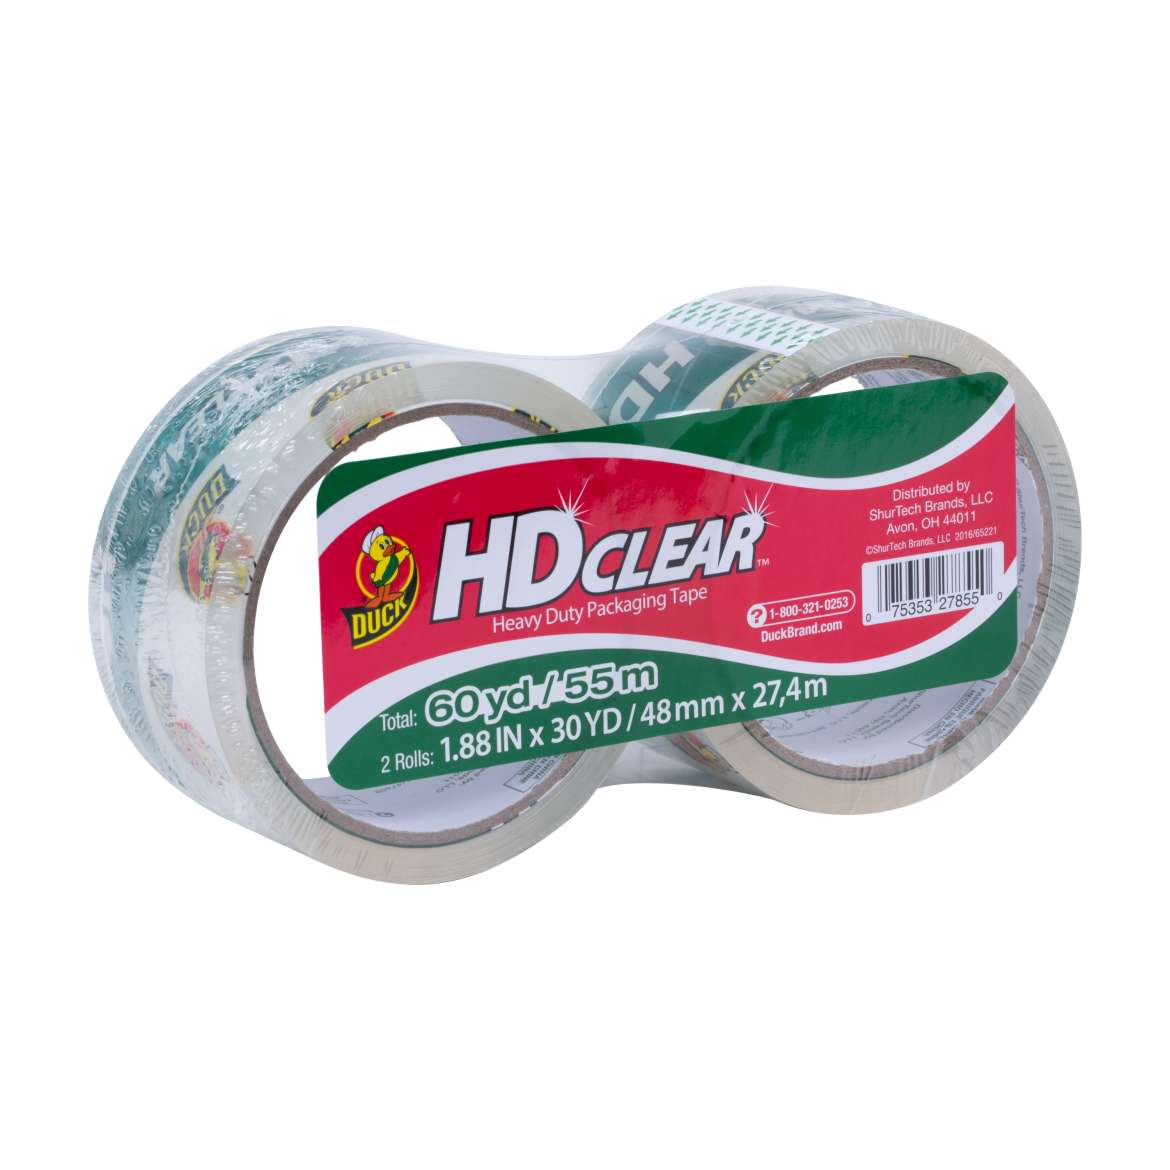 HD Clear™ Heavy Duty Packaging Tape - Clear, 2 pk, 1.88 in. x 30 yd. Image